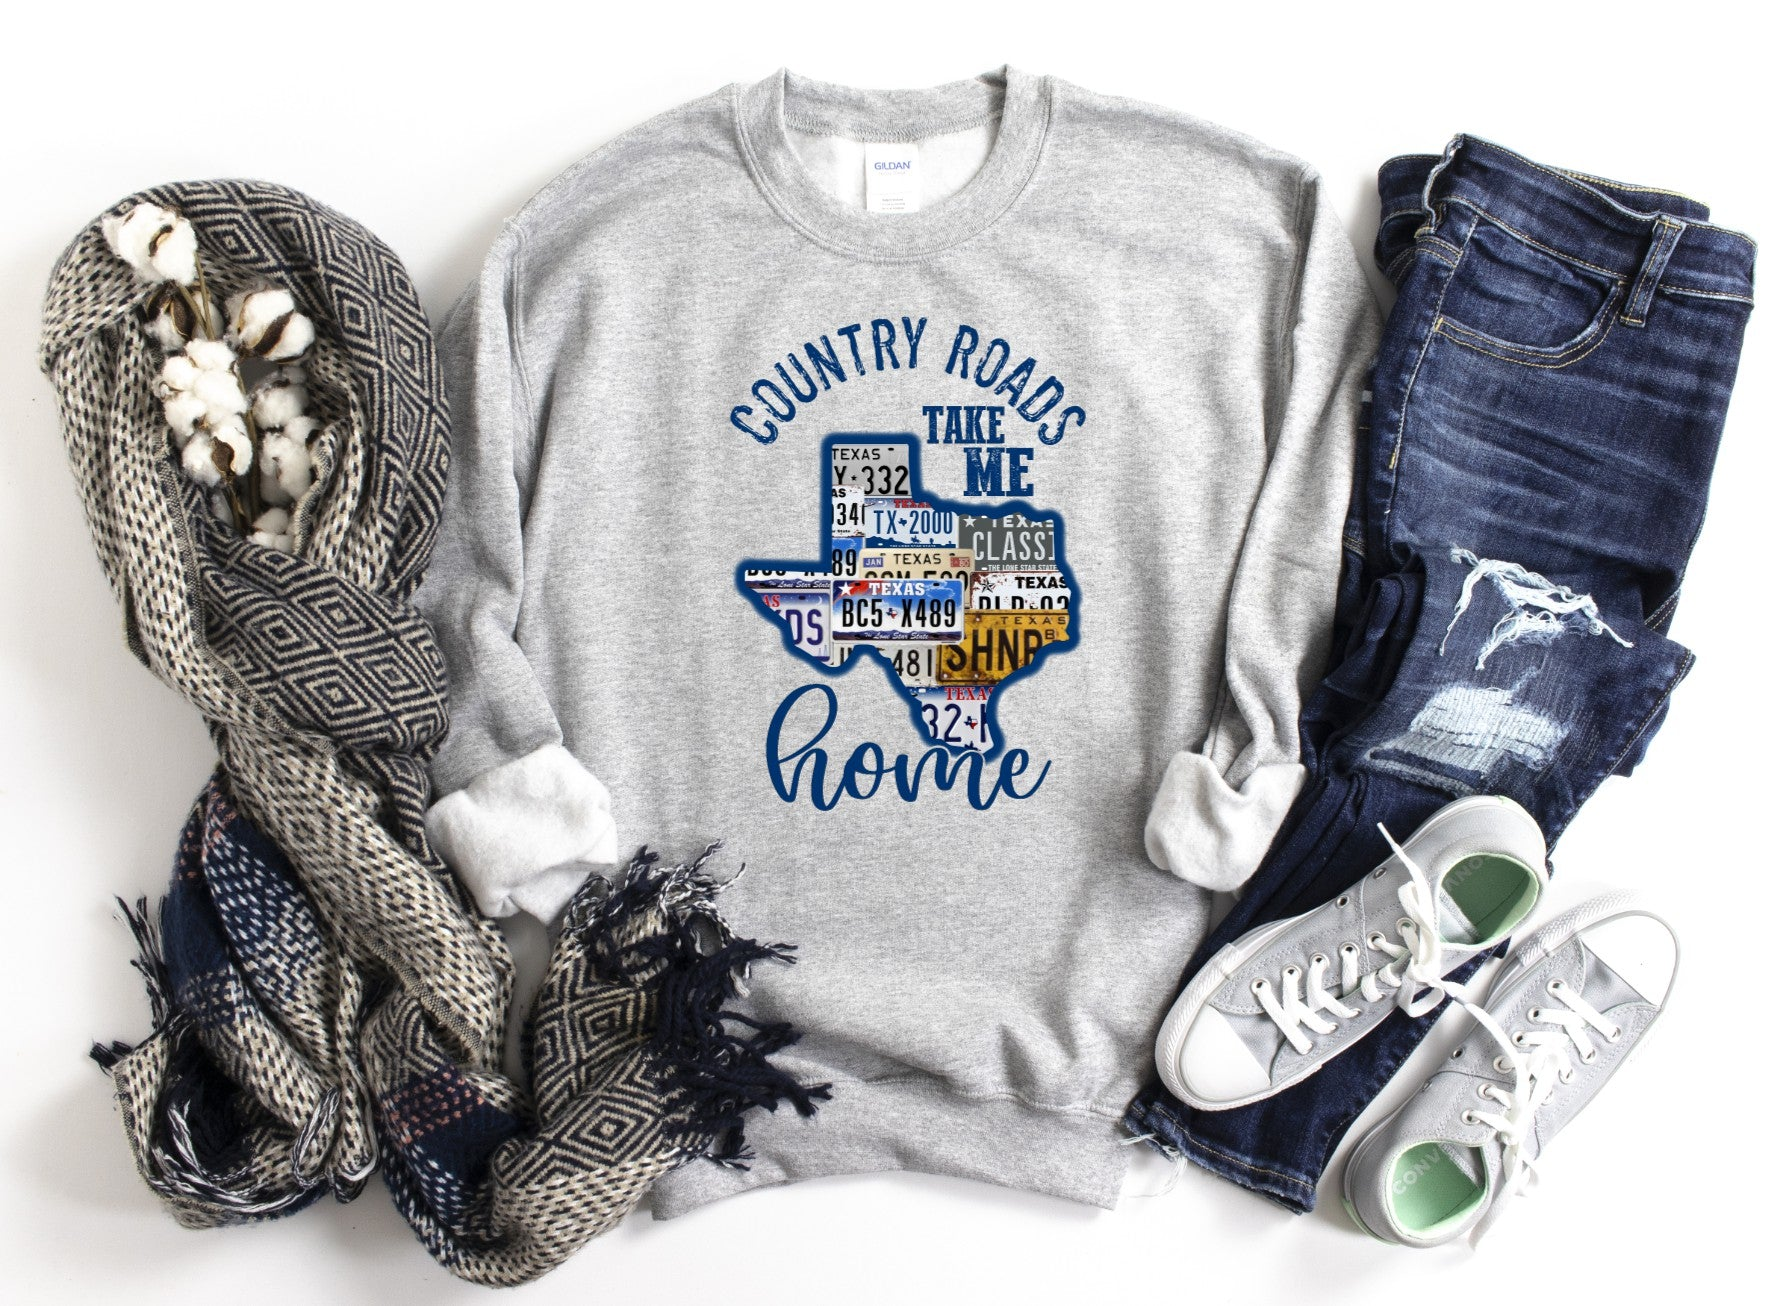 Country Roads Take Me Home TX License Plate Sweatshirt or Printed Tee